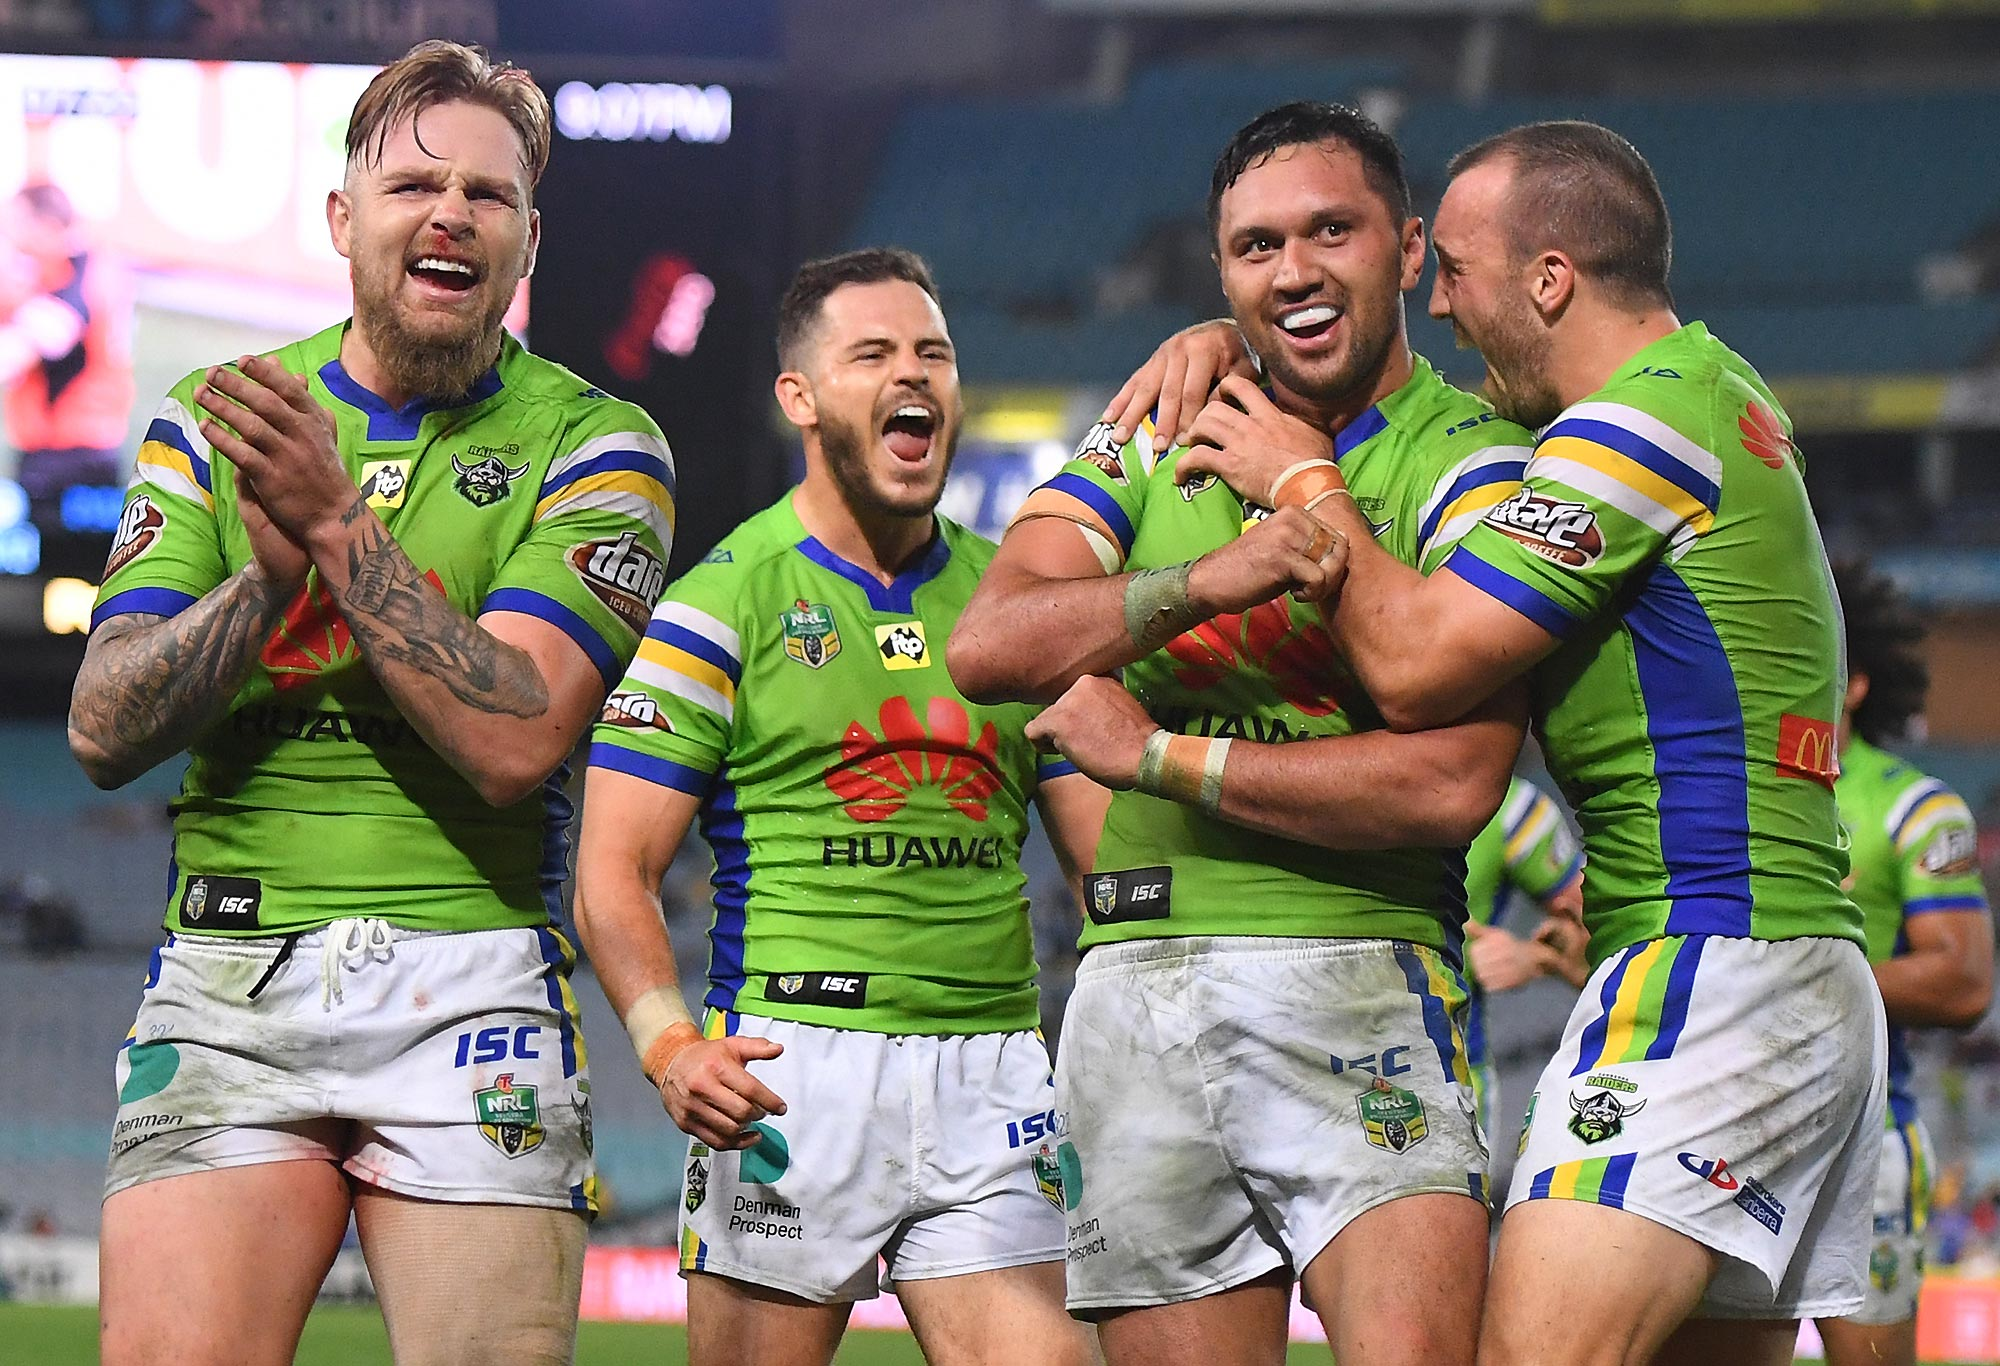 Canberra Raiders celebrate a try